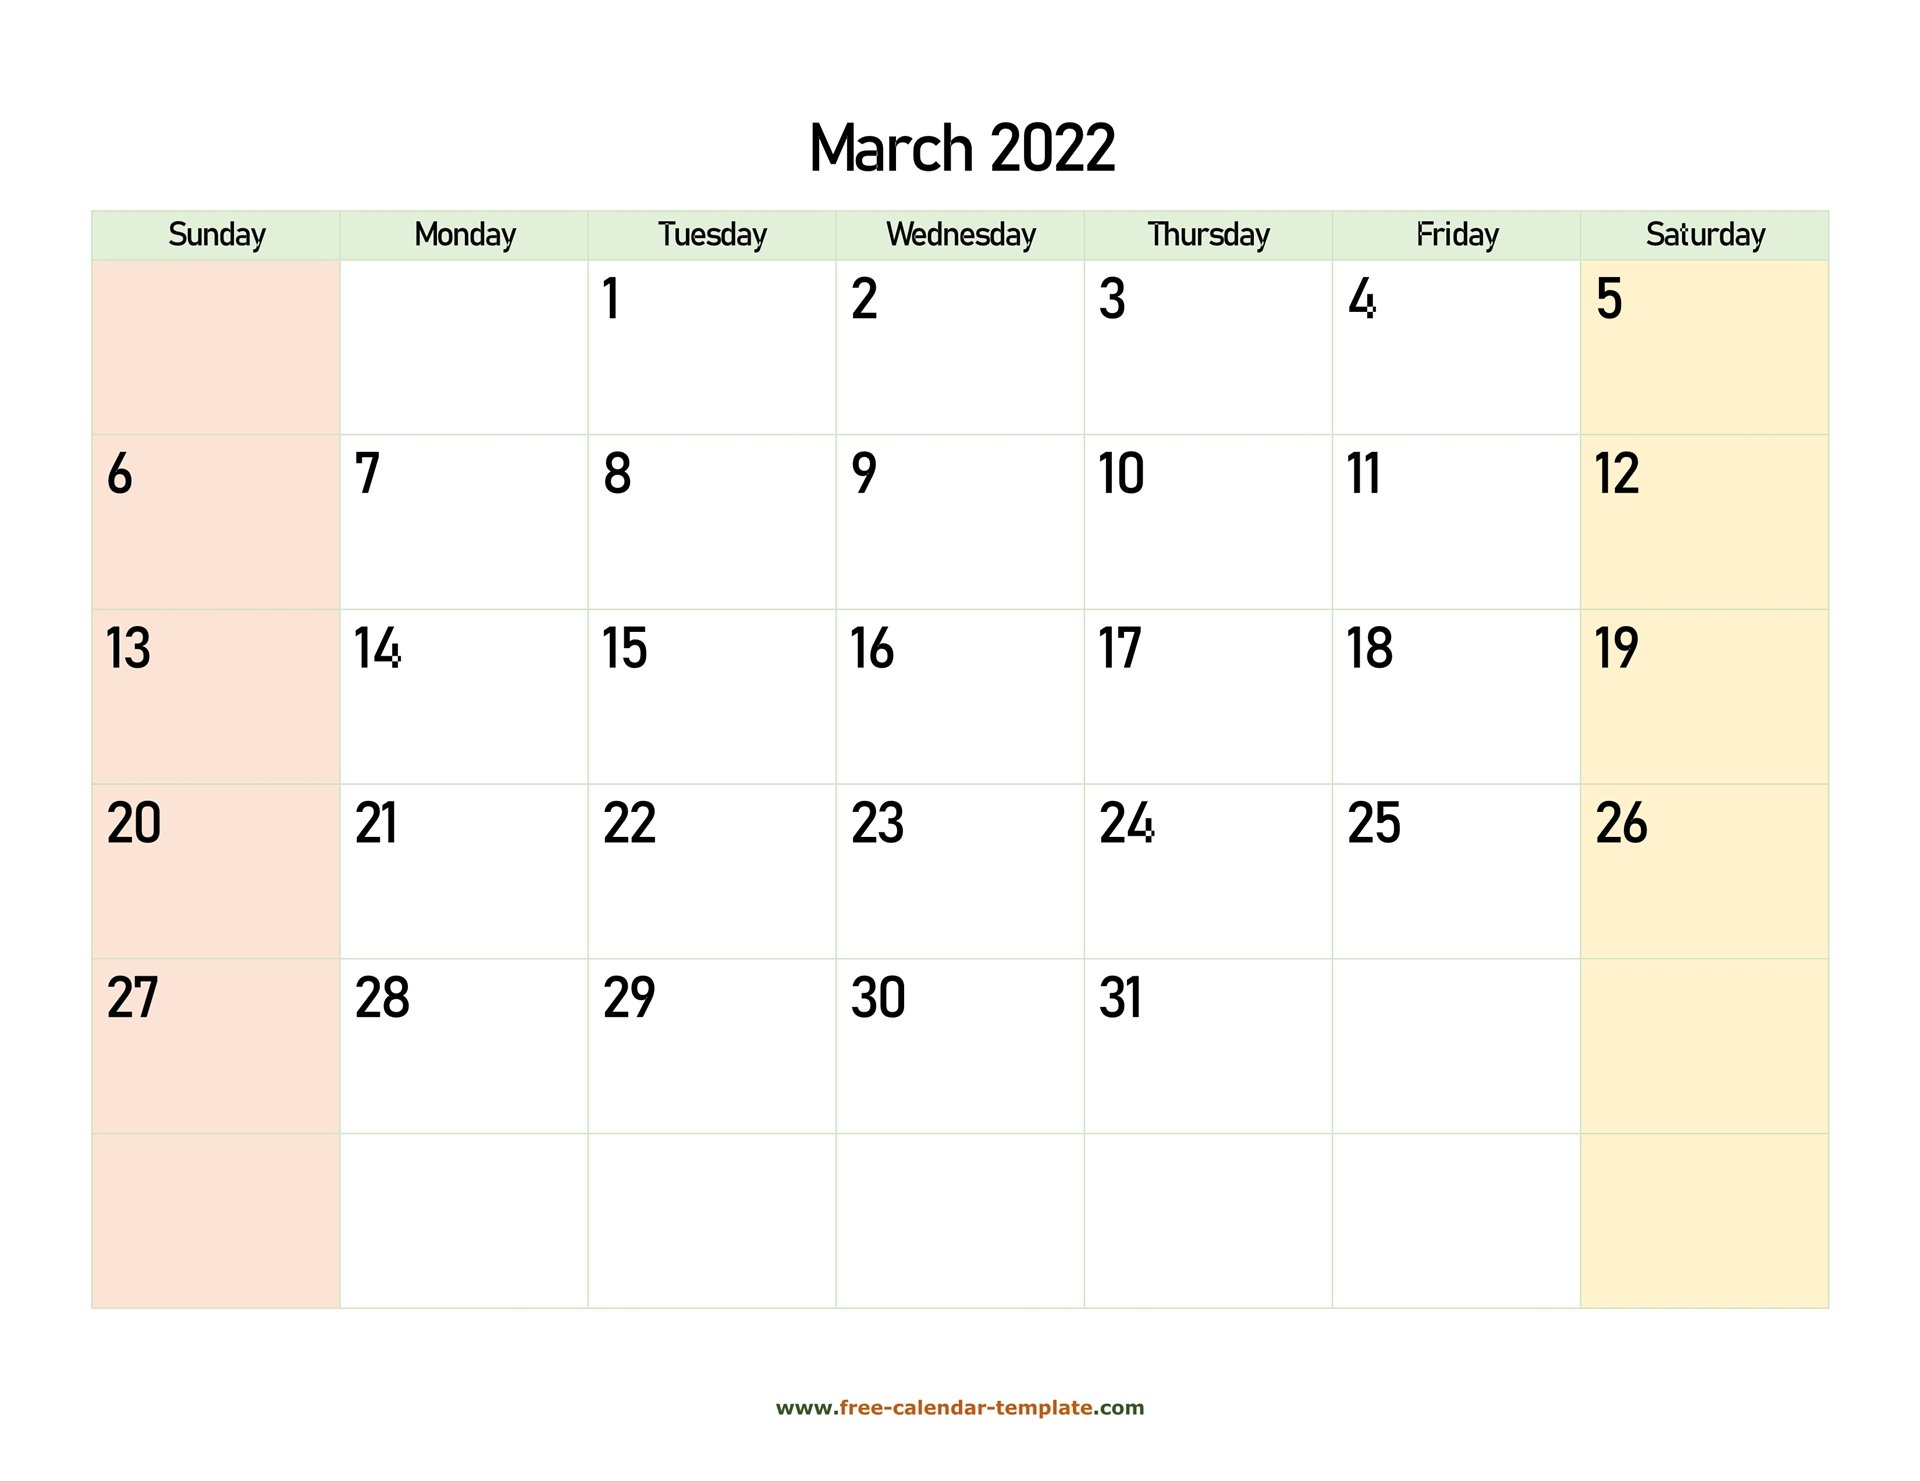 March 2022 Calendar Printable With Coloring On Weekend throughout March 2022 Calendar Template